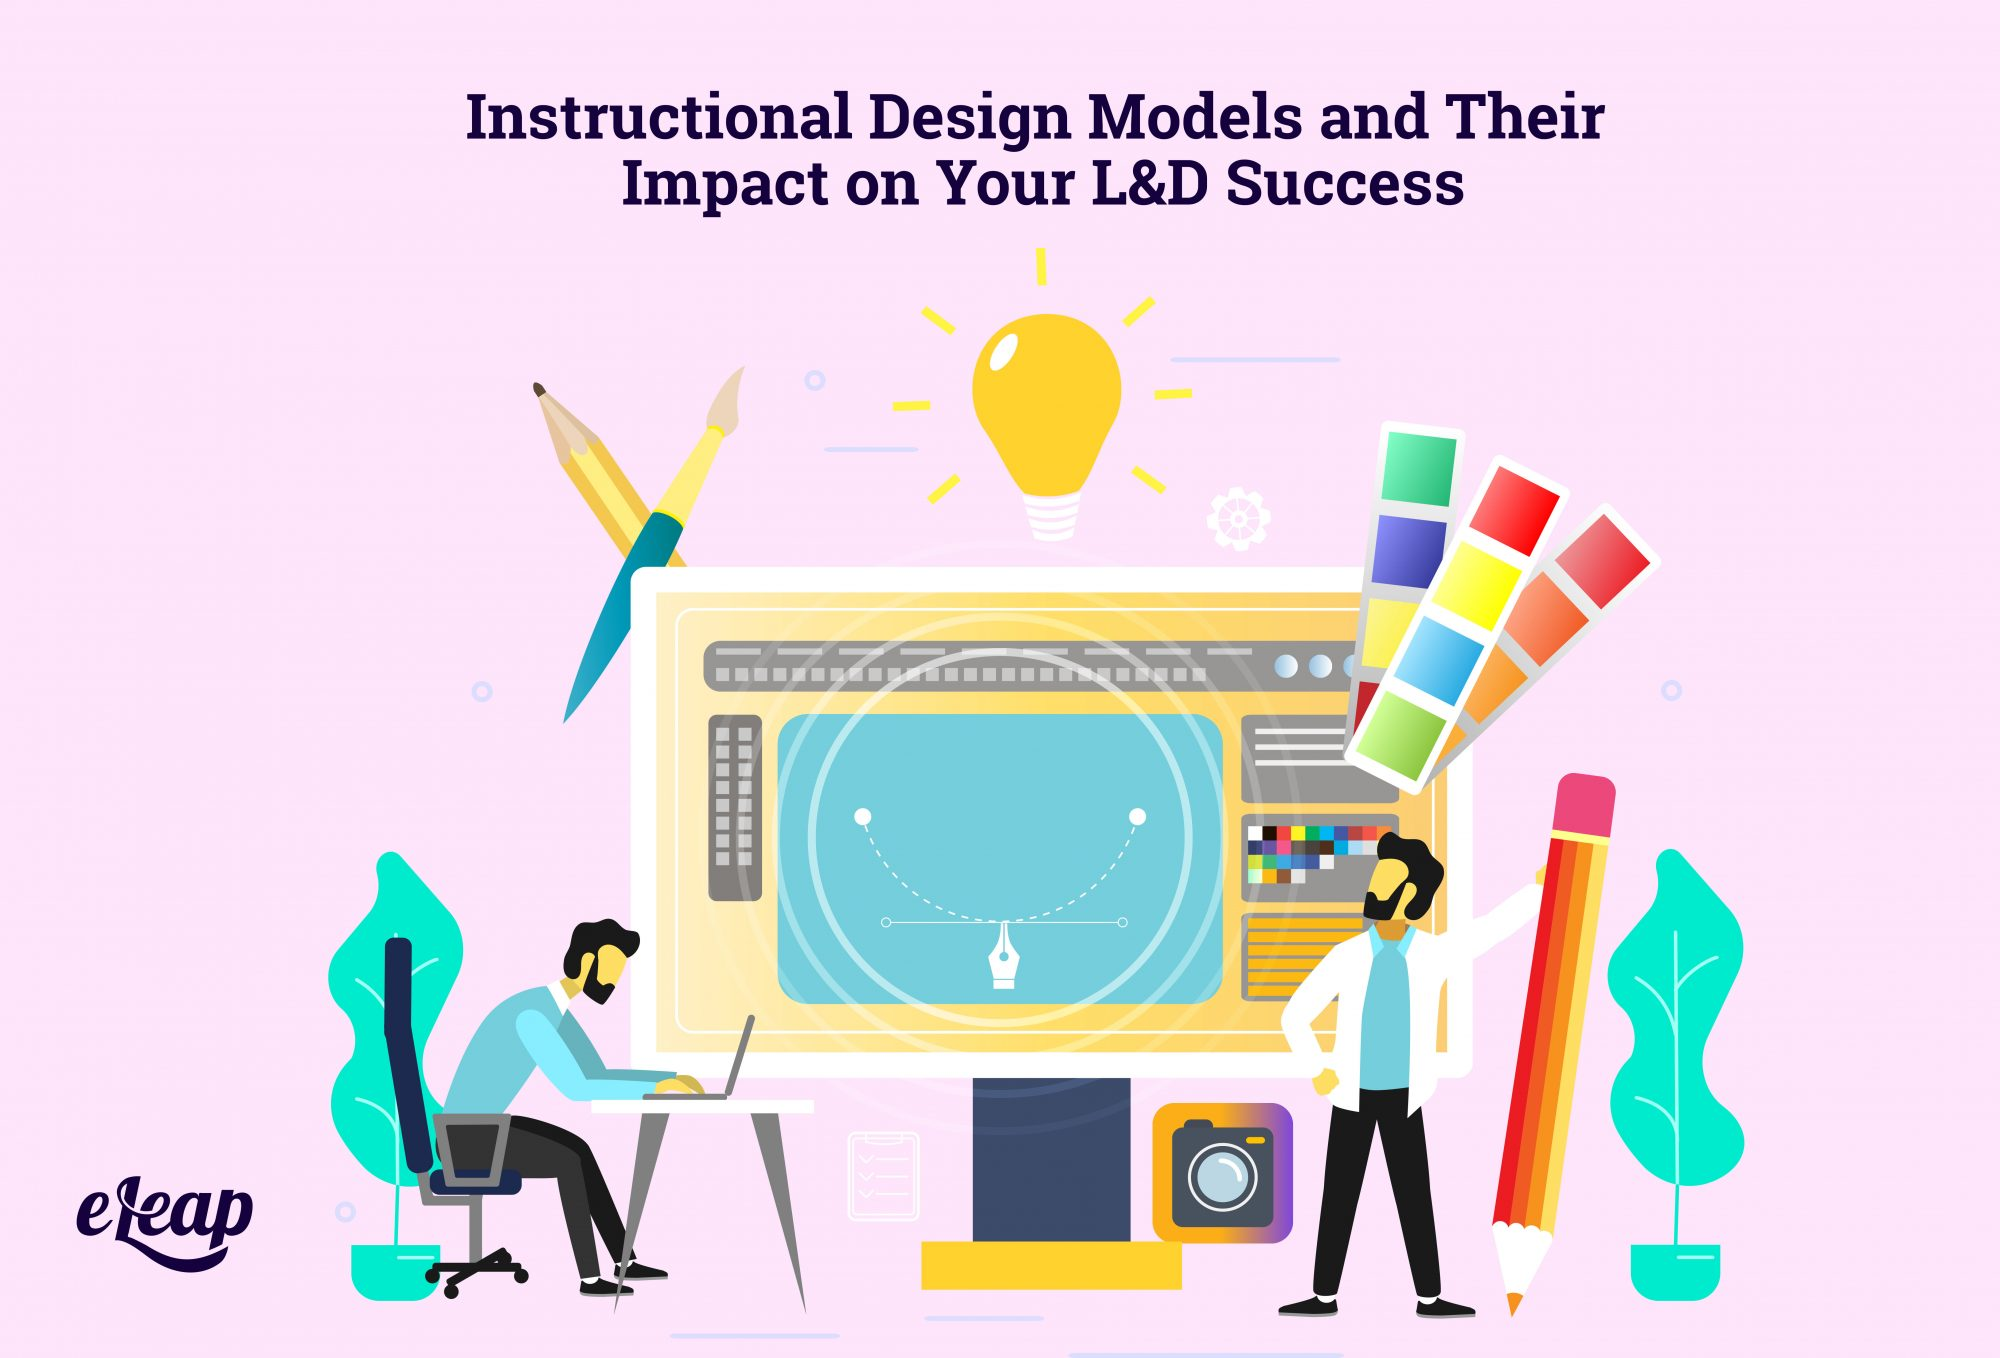 Instructional Design Models and Their Impact on Your L&D Success